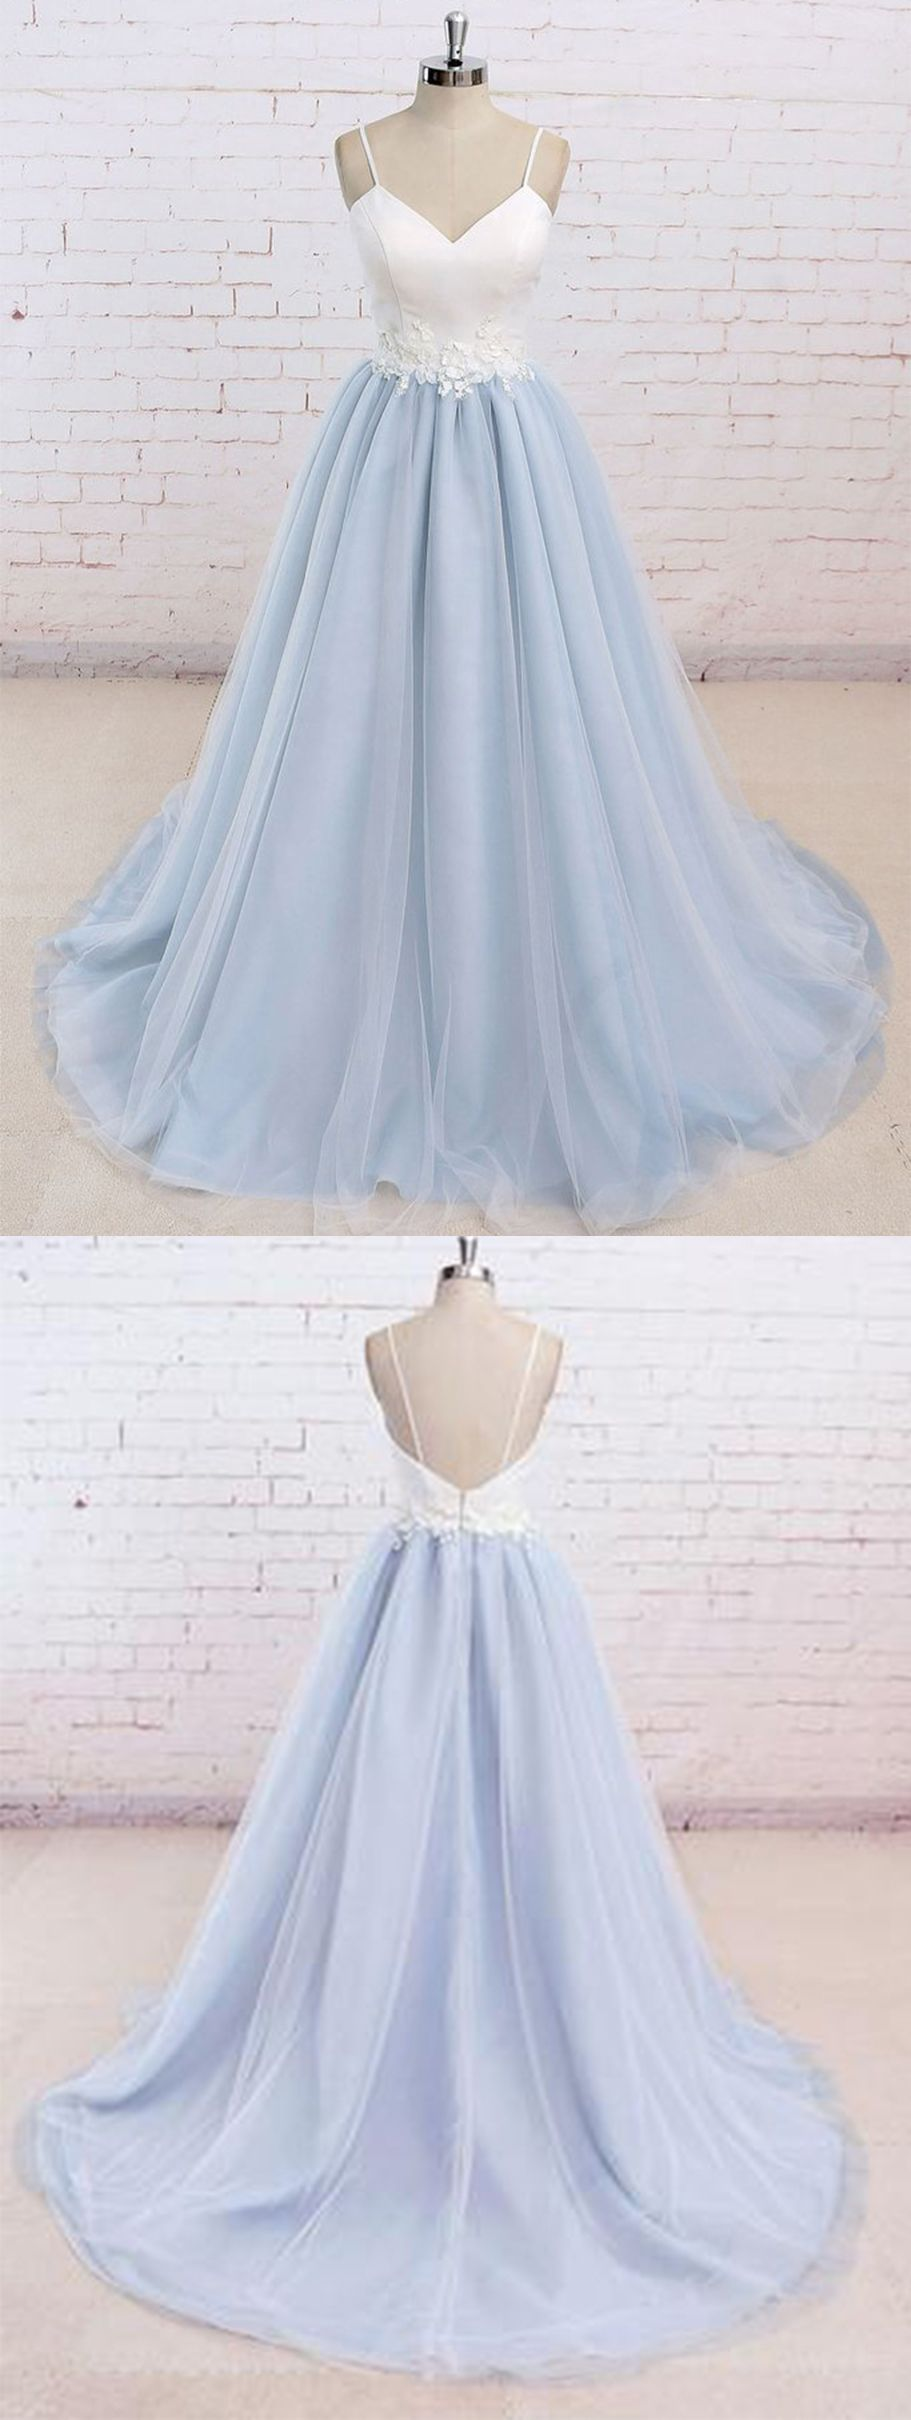 Baby blue tulle long simple flower senior prom dress with white top